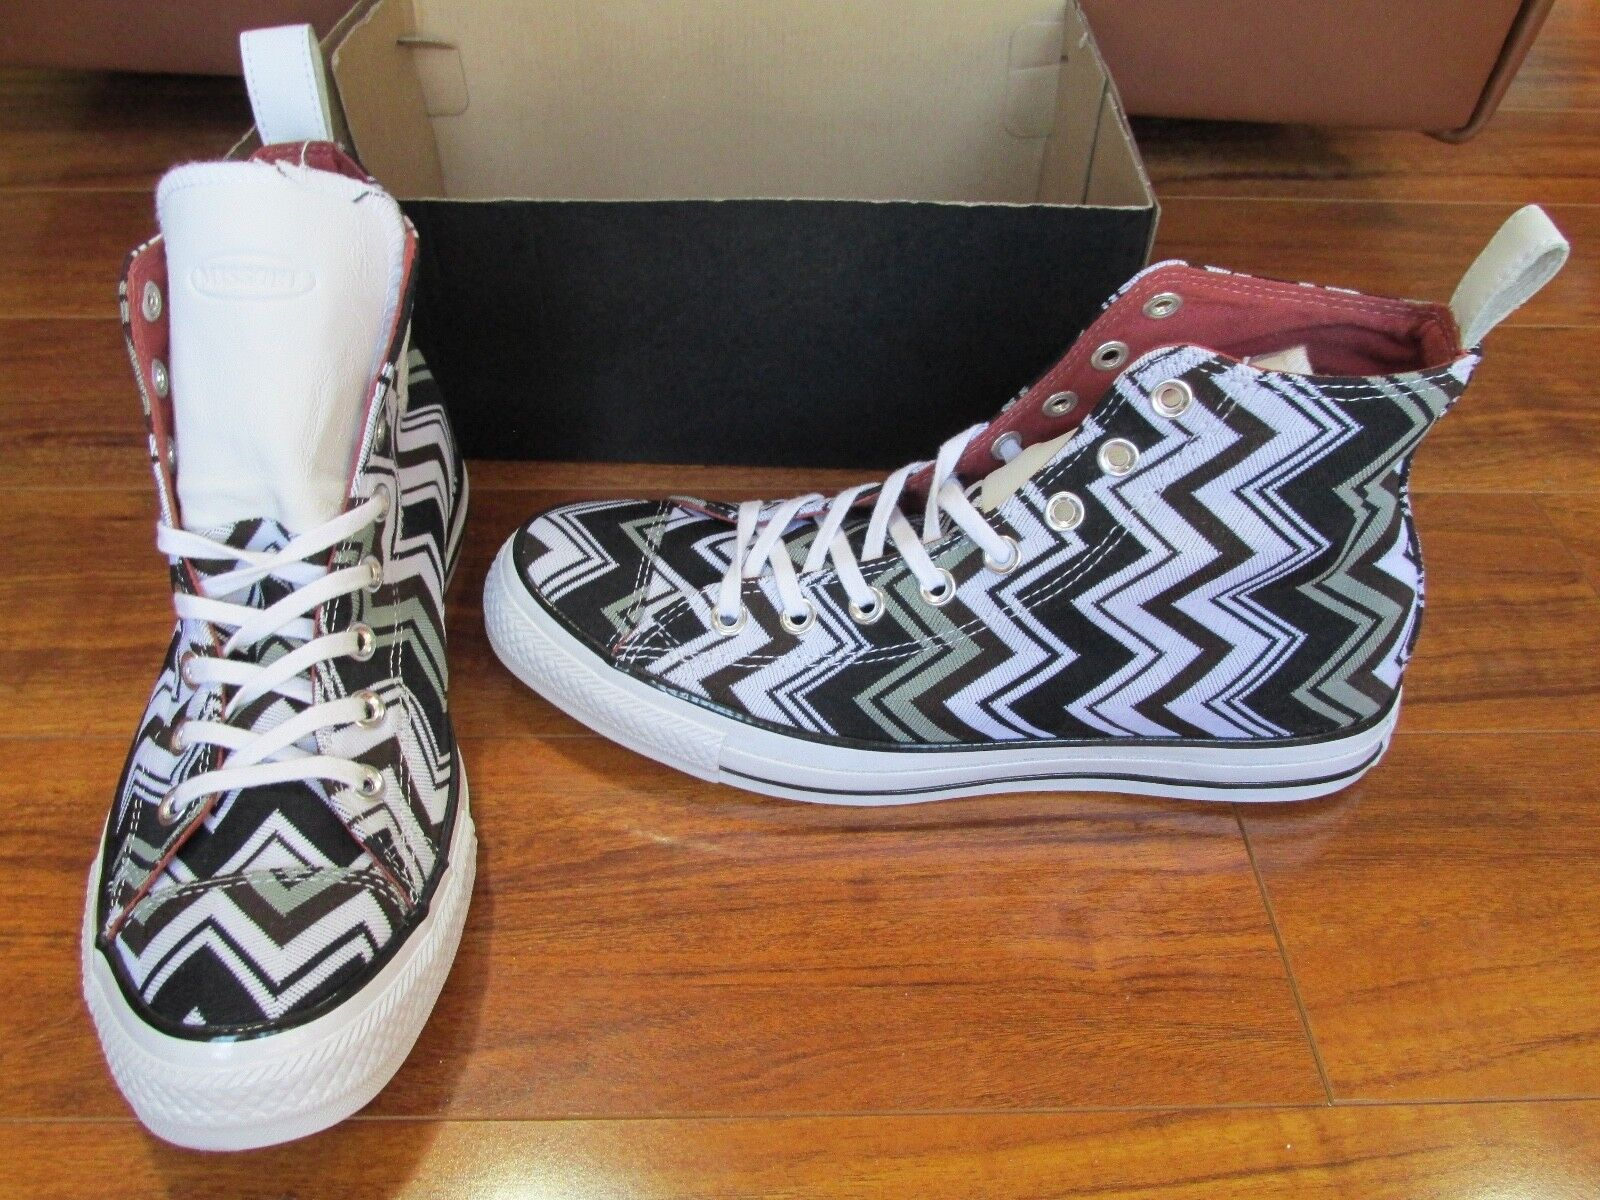 NEW CONVERSE CHUCK TAYLOR AS MISSONI HI  Chaussures  femmes  10 MULTI/EGRET  125.00